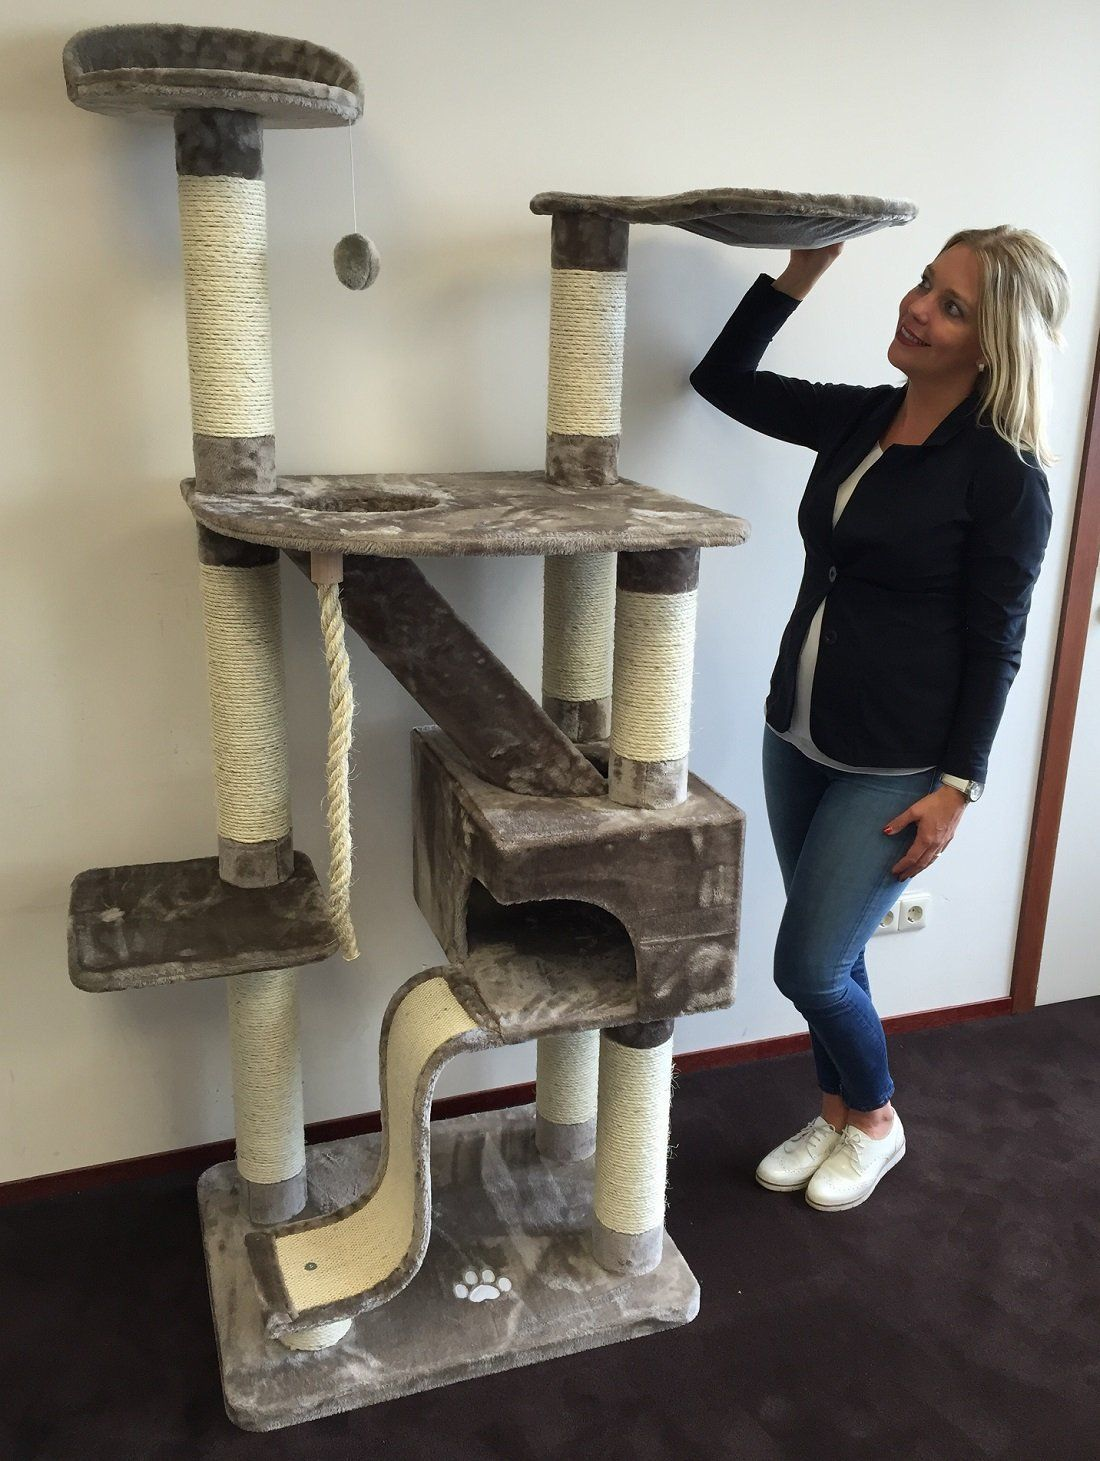 Cat Tree For Large Cats Kilimandjaro Grey Amazon Promo Cat Scratcher Scratching Post Activity Centre For Large Cat Scratcher Cat Scratching Post Big House Cats